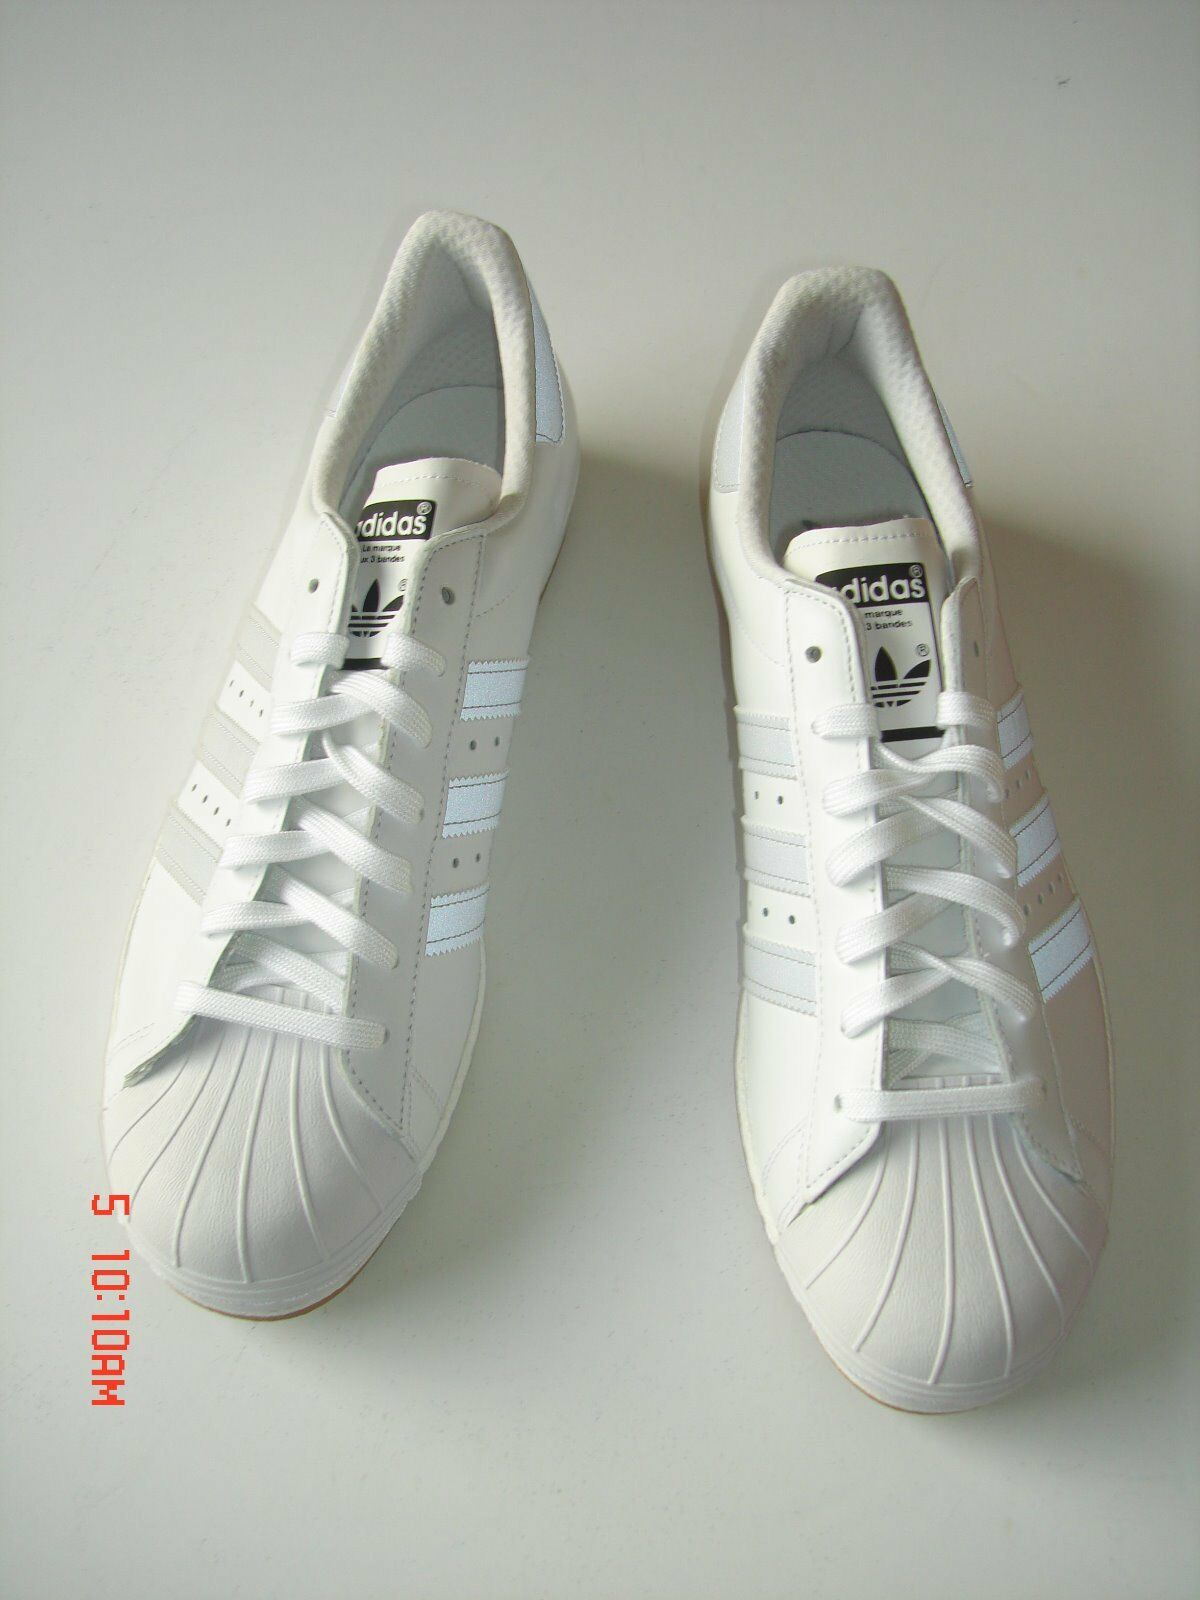 Adidas® SHOES-SUPERSTAR 80s REFLECTIVE- Size 13-NEW–S/N B35384 – WHITE on WHITE